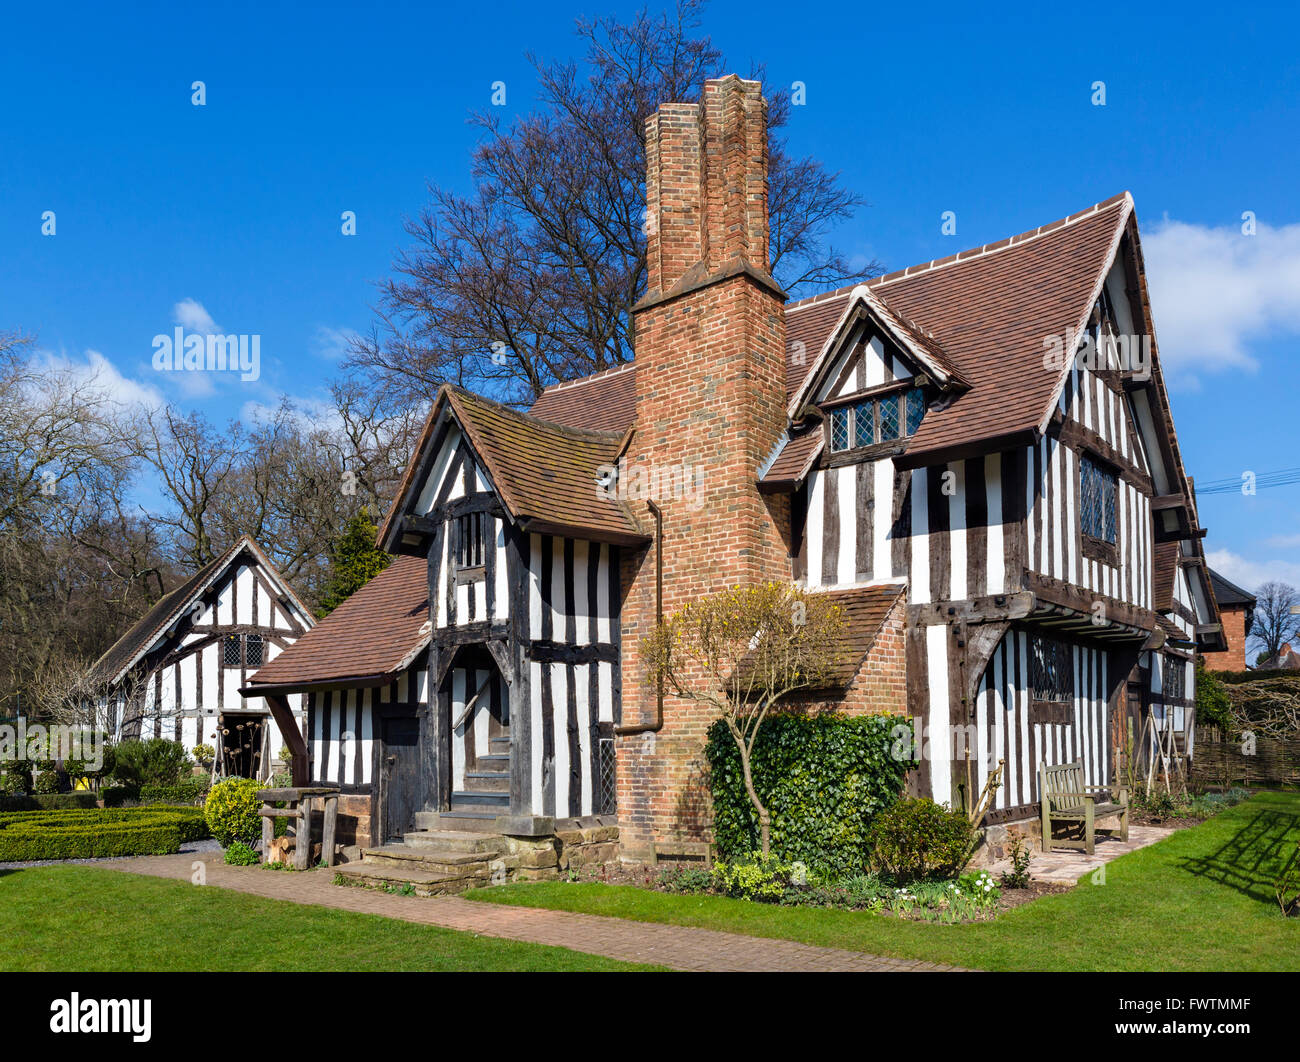 Selly Manor, a reconstructed 14thC manor house, Bournville, Birmingham, West Midlands, UK - Stock Image